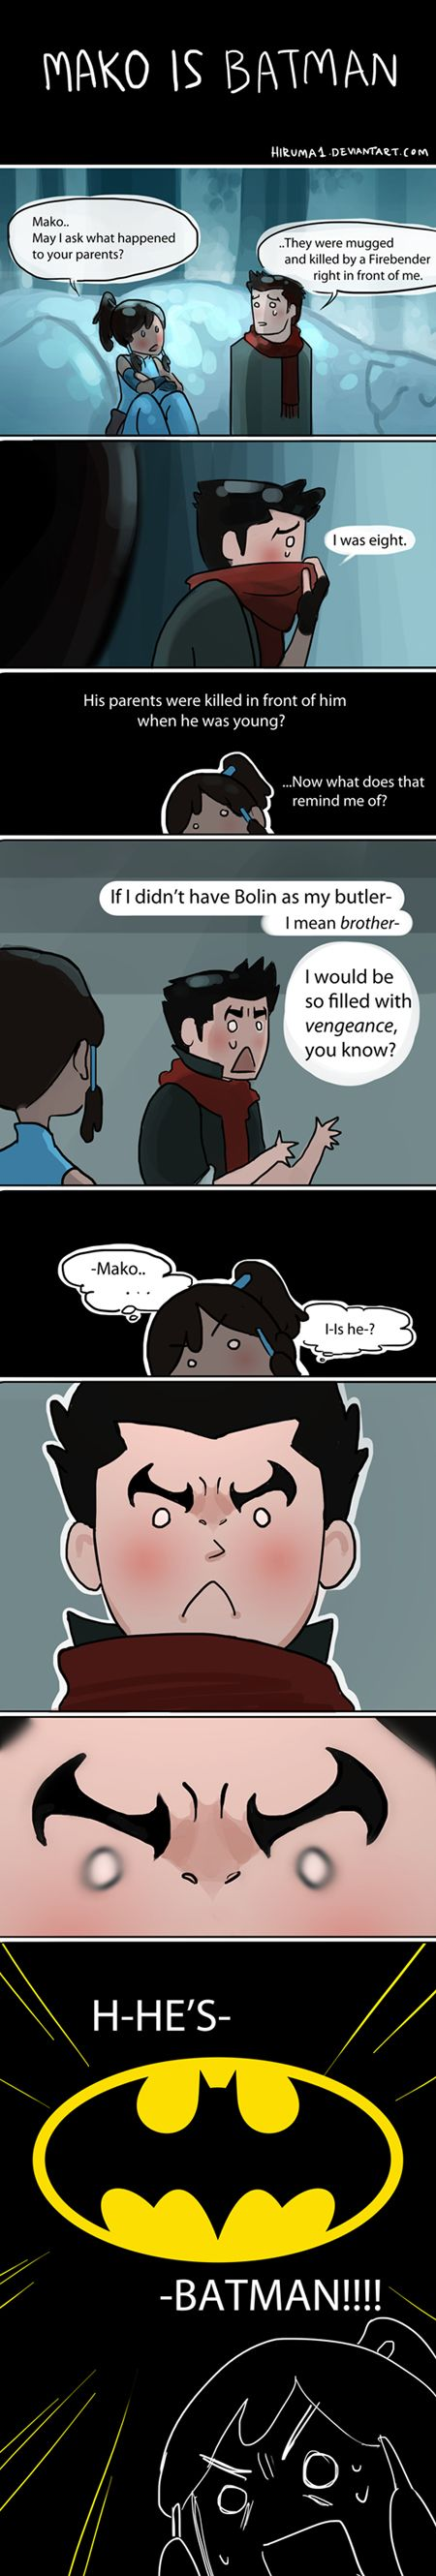 Mako is NOT, hear me, NOT cool enough to be Batman. Sorry, Mako. You cheated on Asami, and Asami was cool.